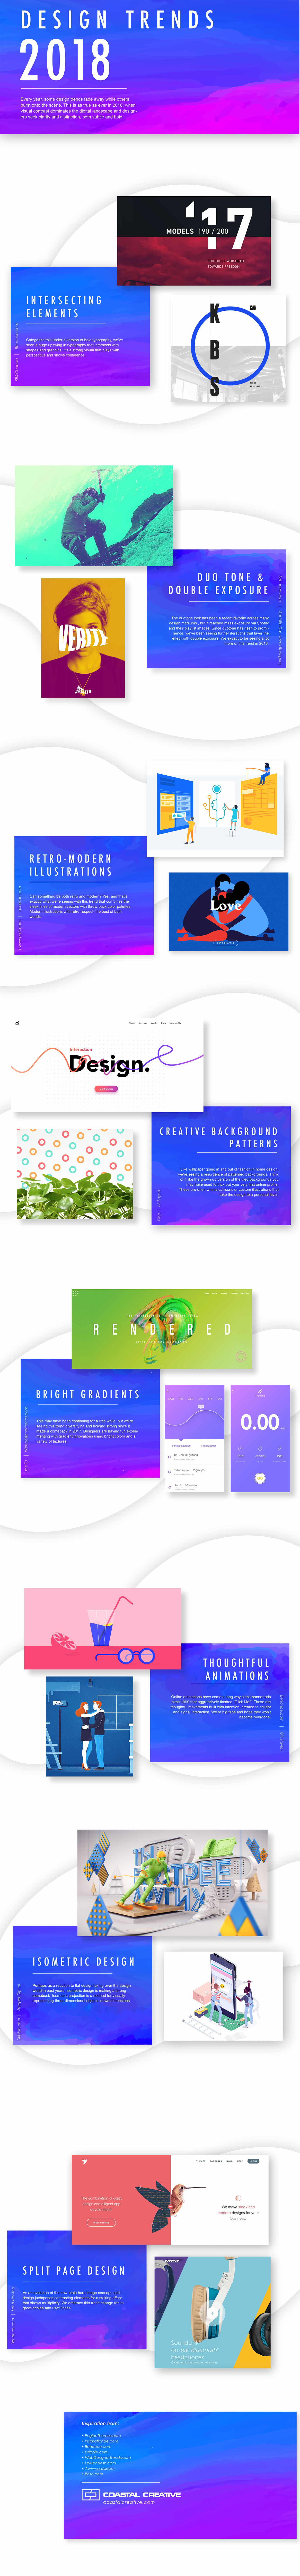 2018 graphic design trends inspirational showcase just creative